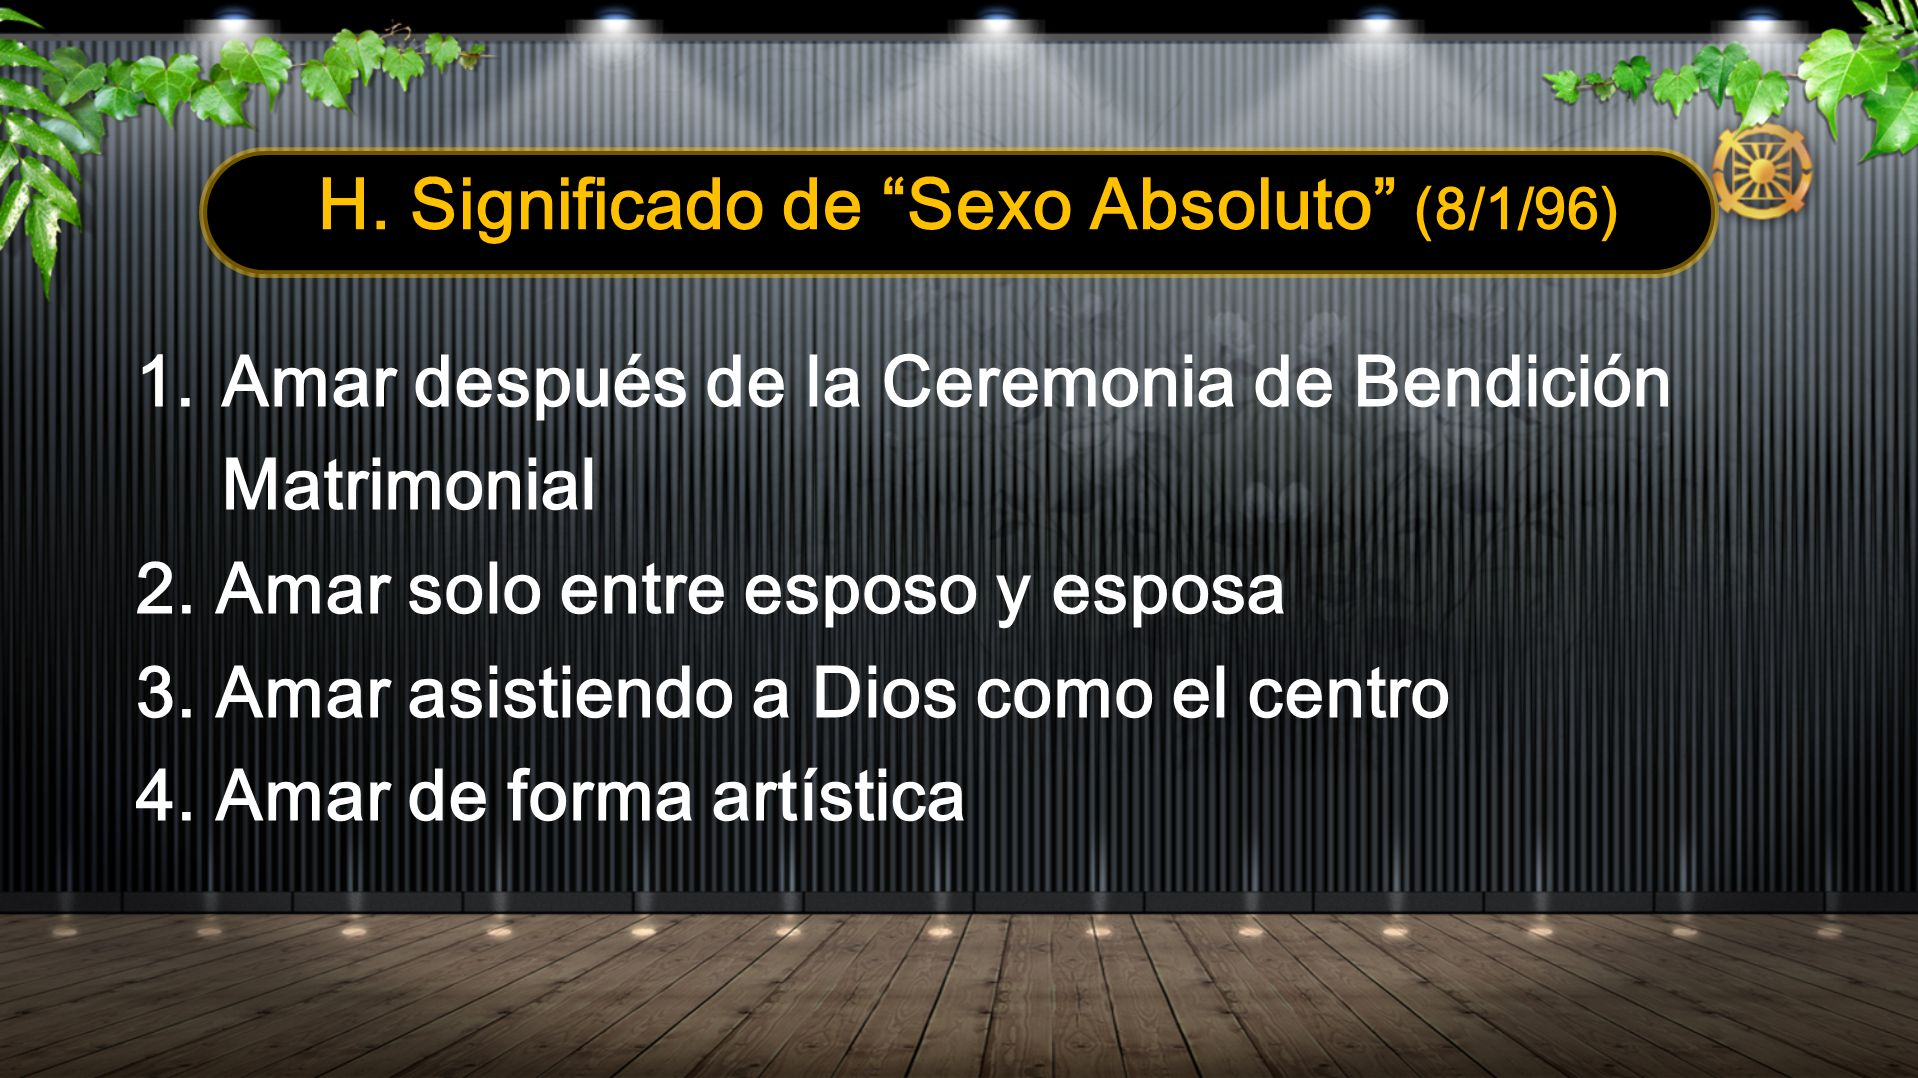 H. Significado de Sexo Absoluto (8/1/96)